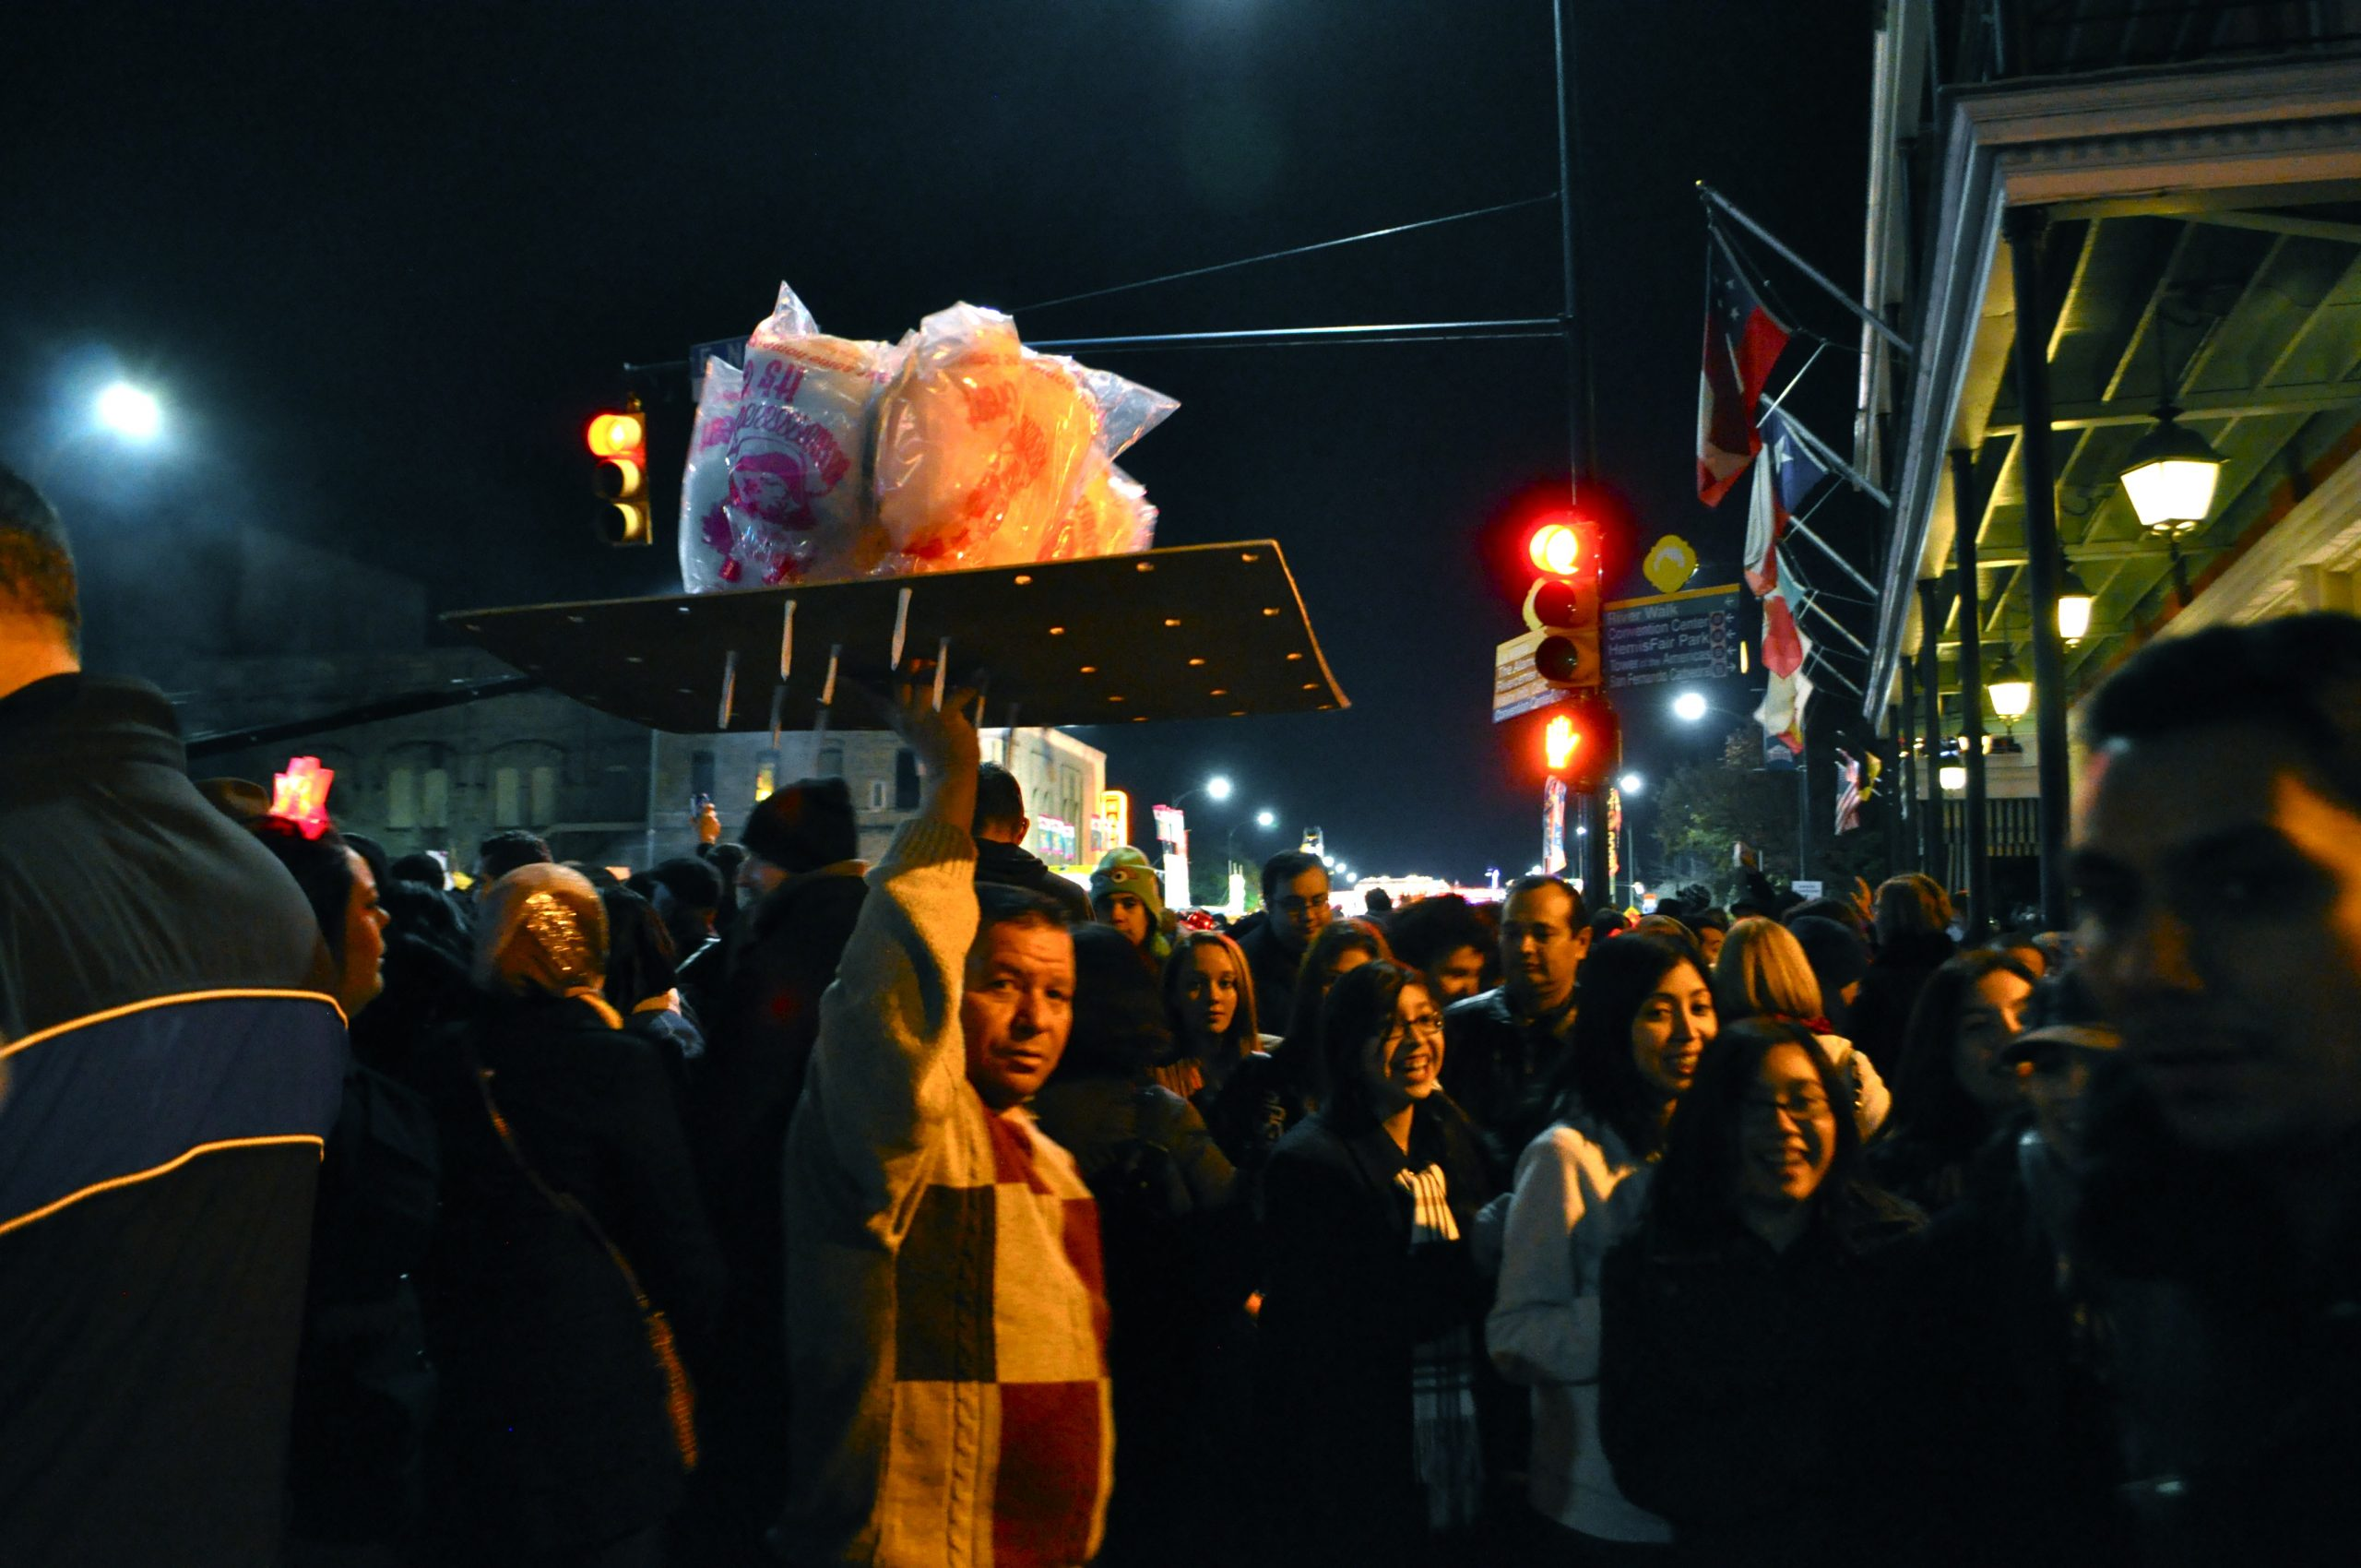 A cotton candy vendor makes his way through thousands of New Year's Eve revelers gathered on South Alamo Street in downtown San Antonio on Dec. 31, 2013.